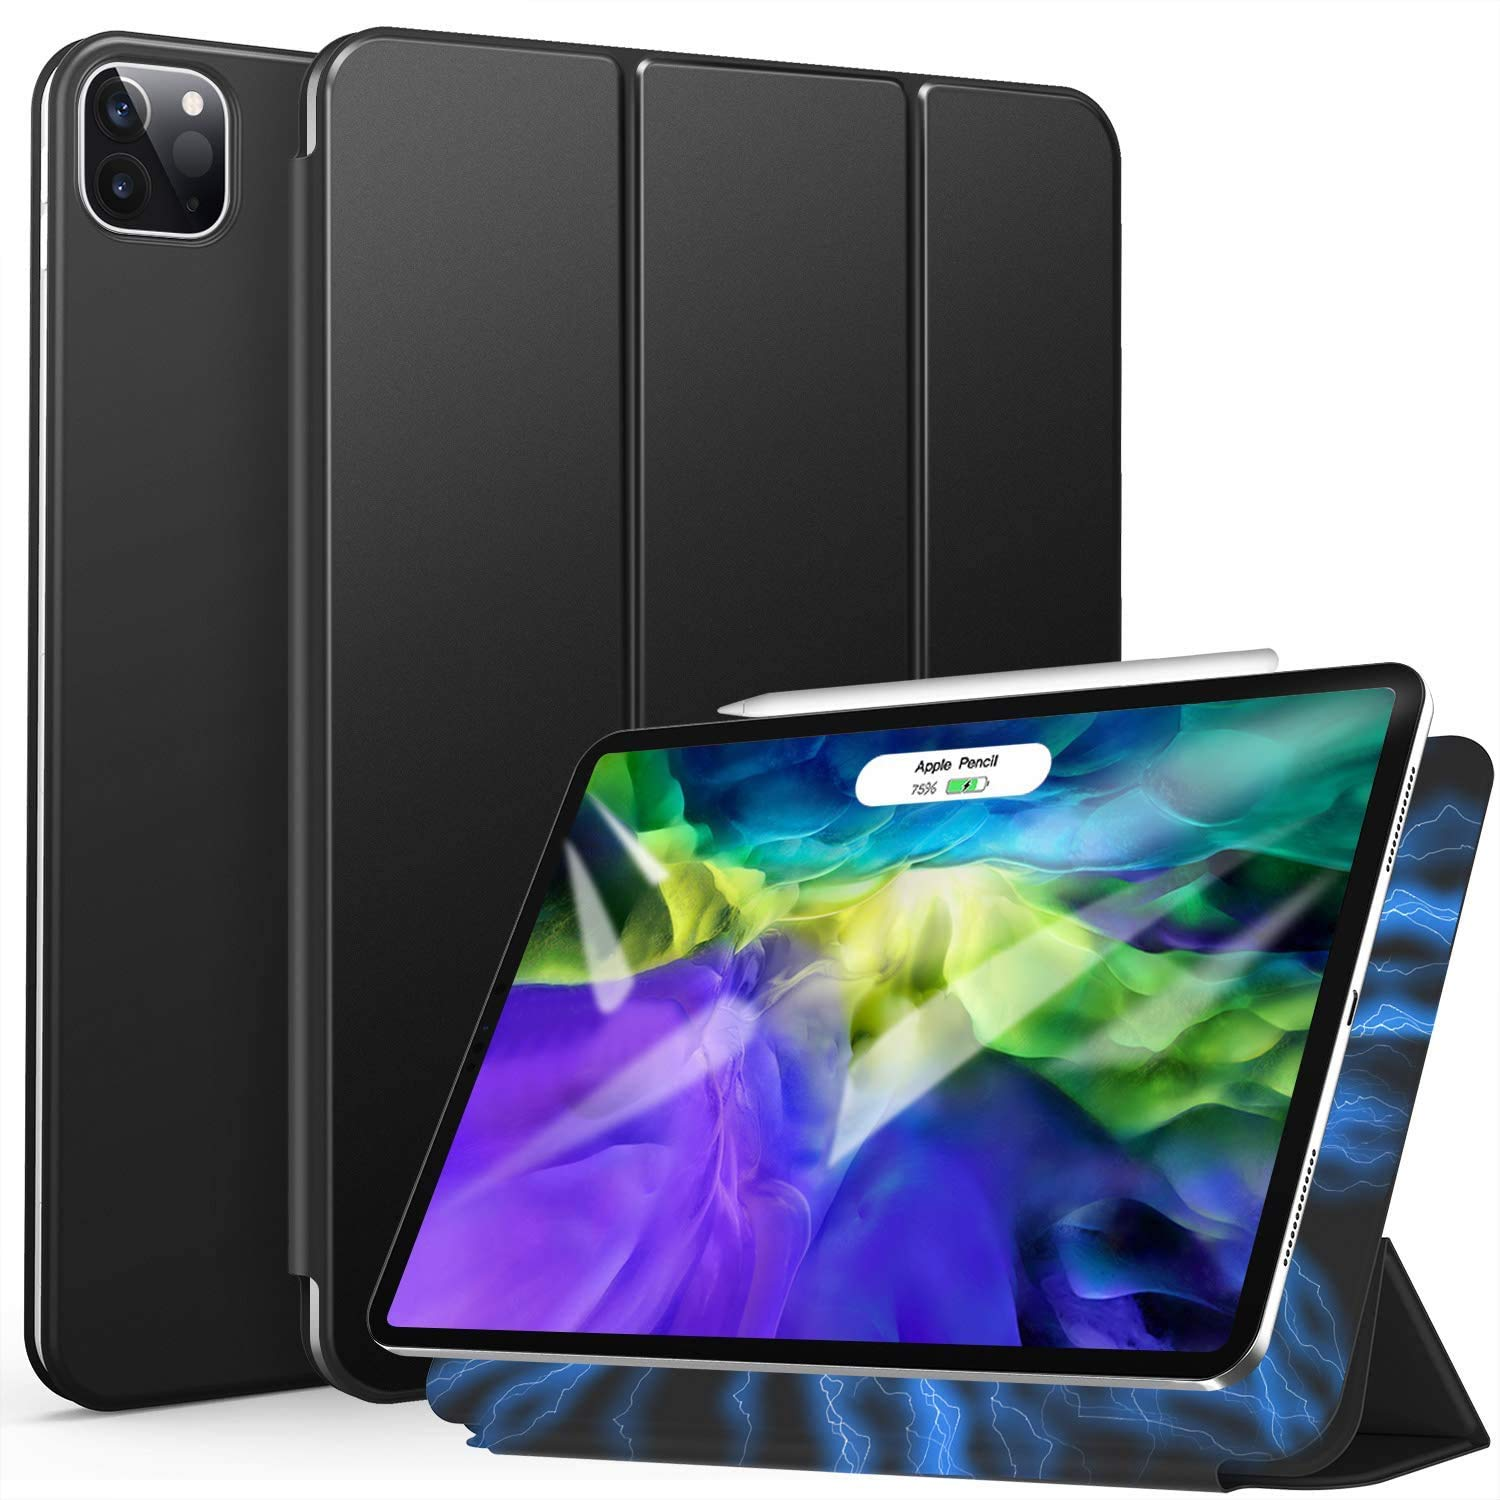 ZtotopCase Magnetic Case for iPad Pro 11 2021/2020, Ultra Slim Smart Magnetic Back, Trifold Stand Protective Cover with Auto Wake/Sleep for 2021/2020 iPad Pro 11 Inch, Black